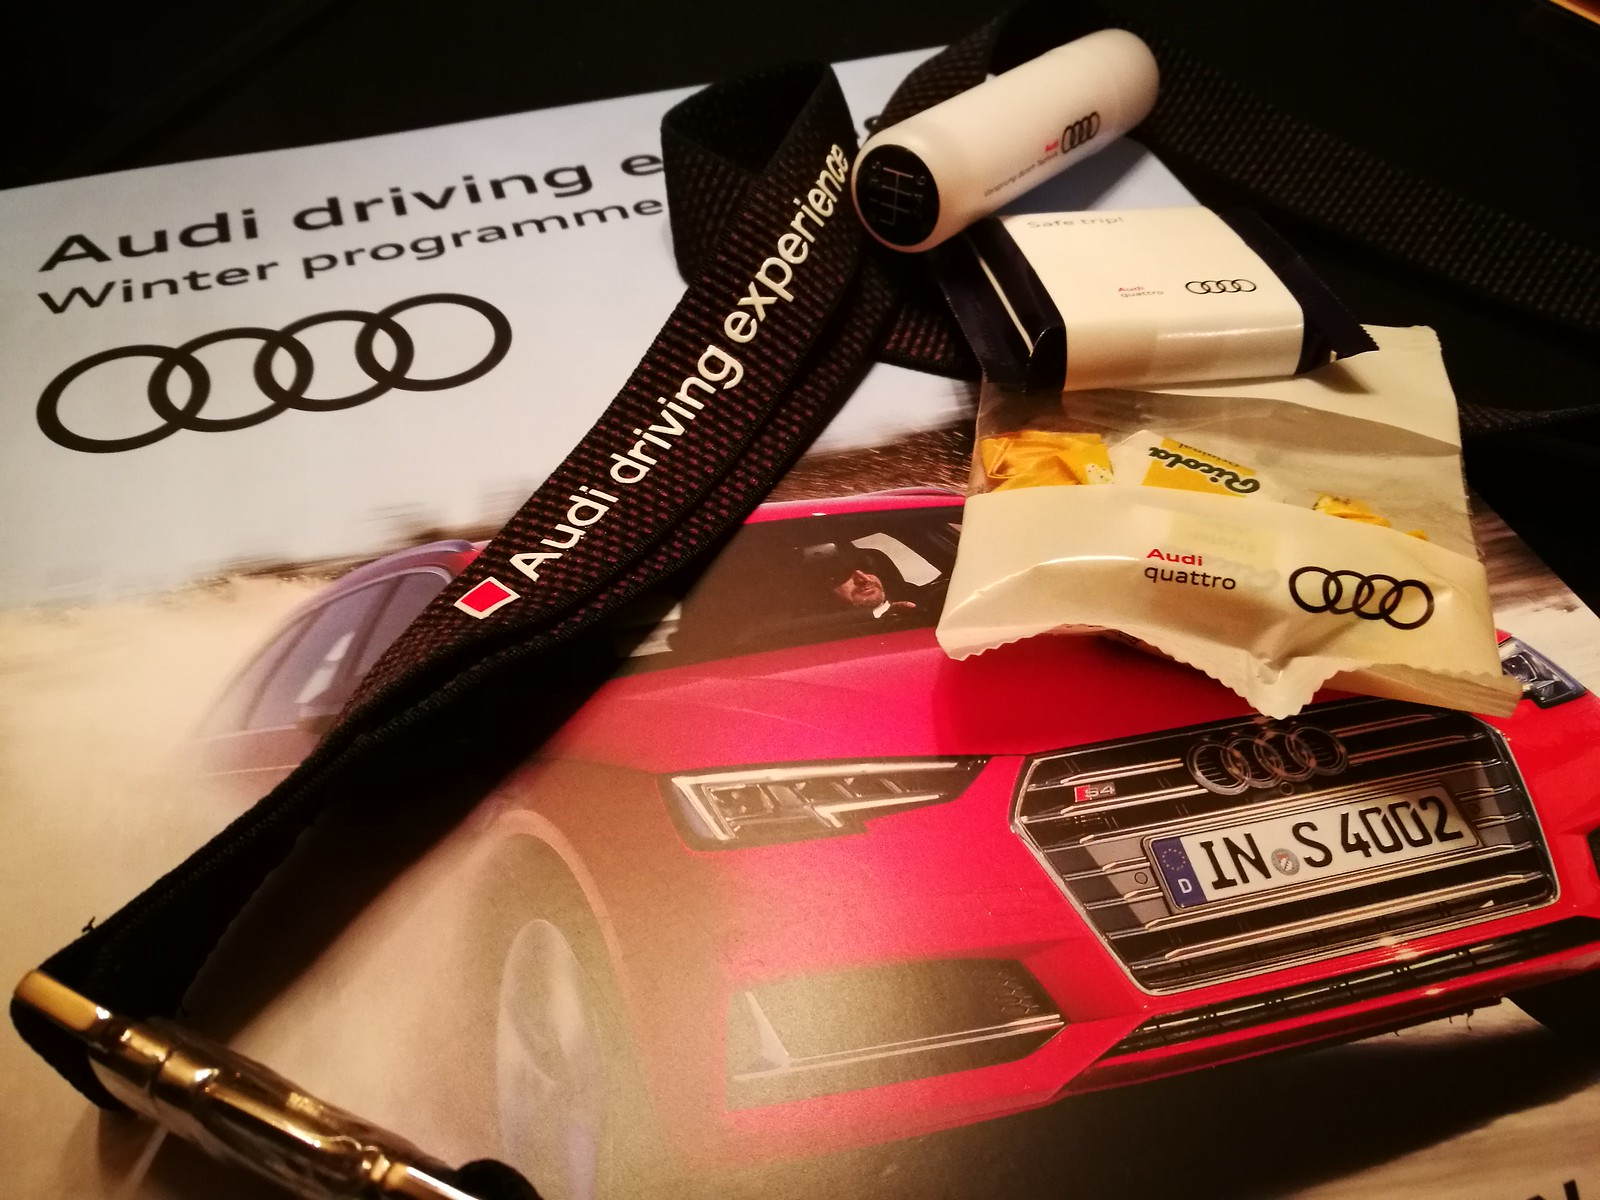 Audi Driving Experience goodies